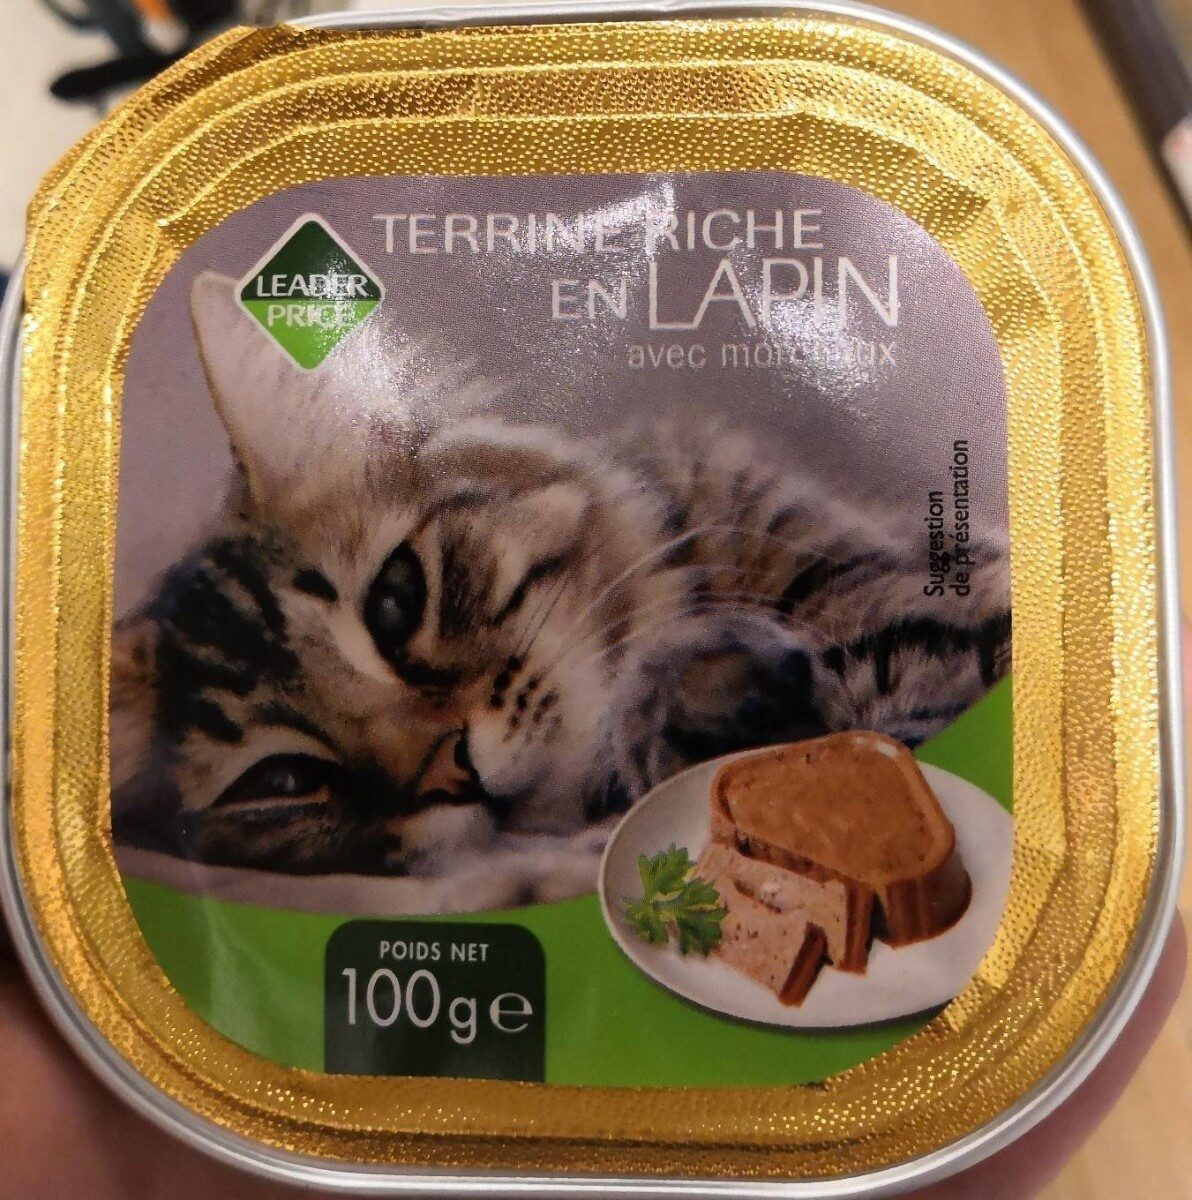 Terrine riche en lapin - Product - fr